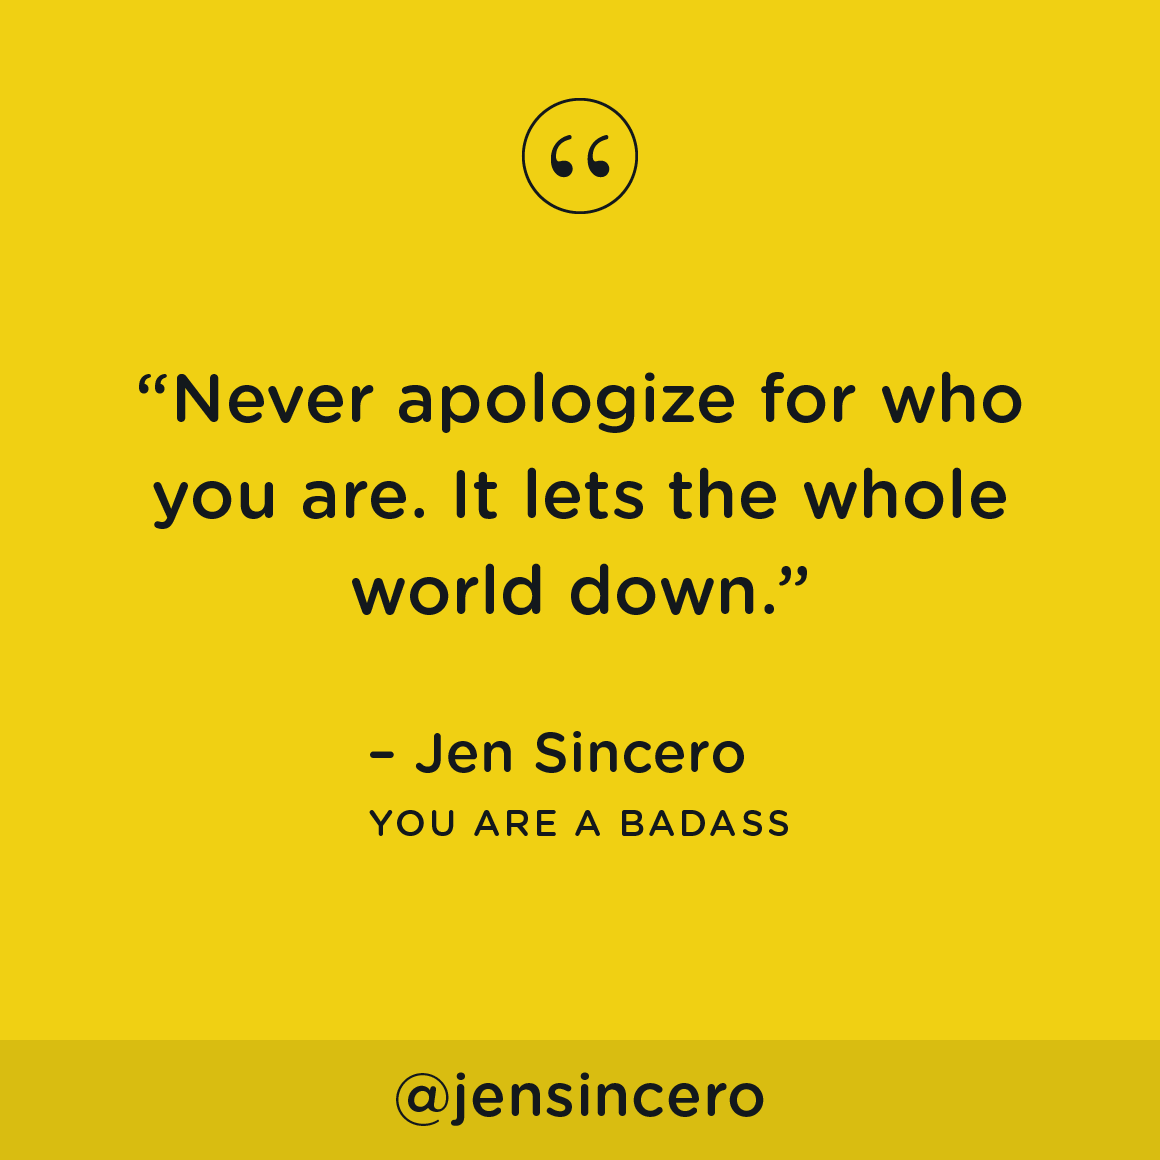 When you love yourself enough to stand in your truth no matter what the cost, everyone benefits. #youareabadass #QOTD #TuesdayThoughts #TuesdayMotivation